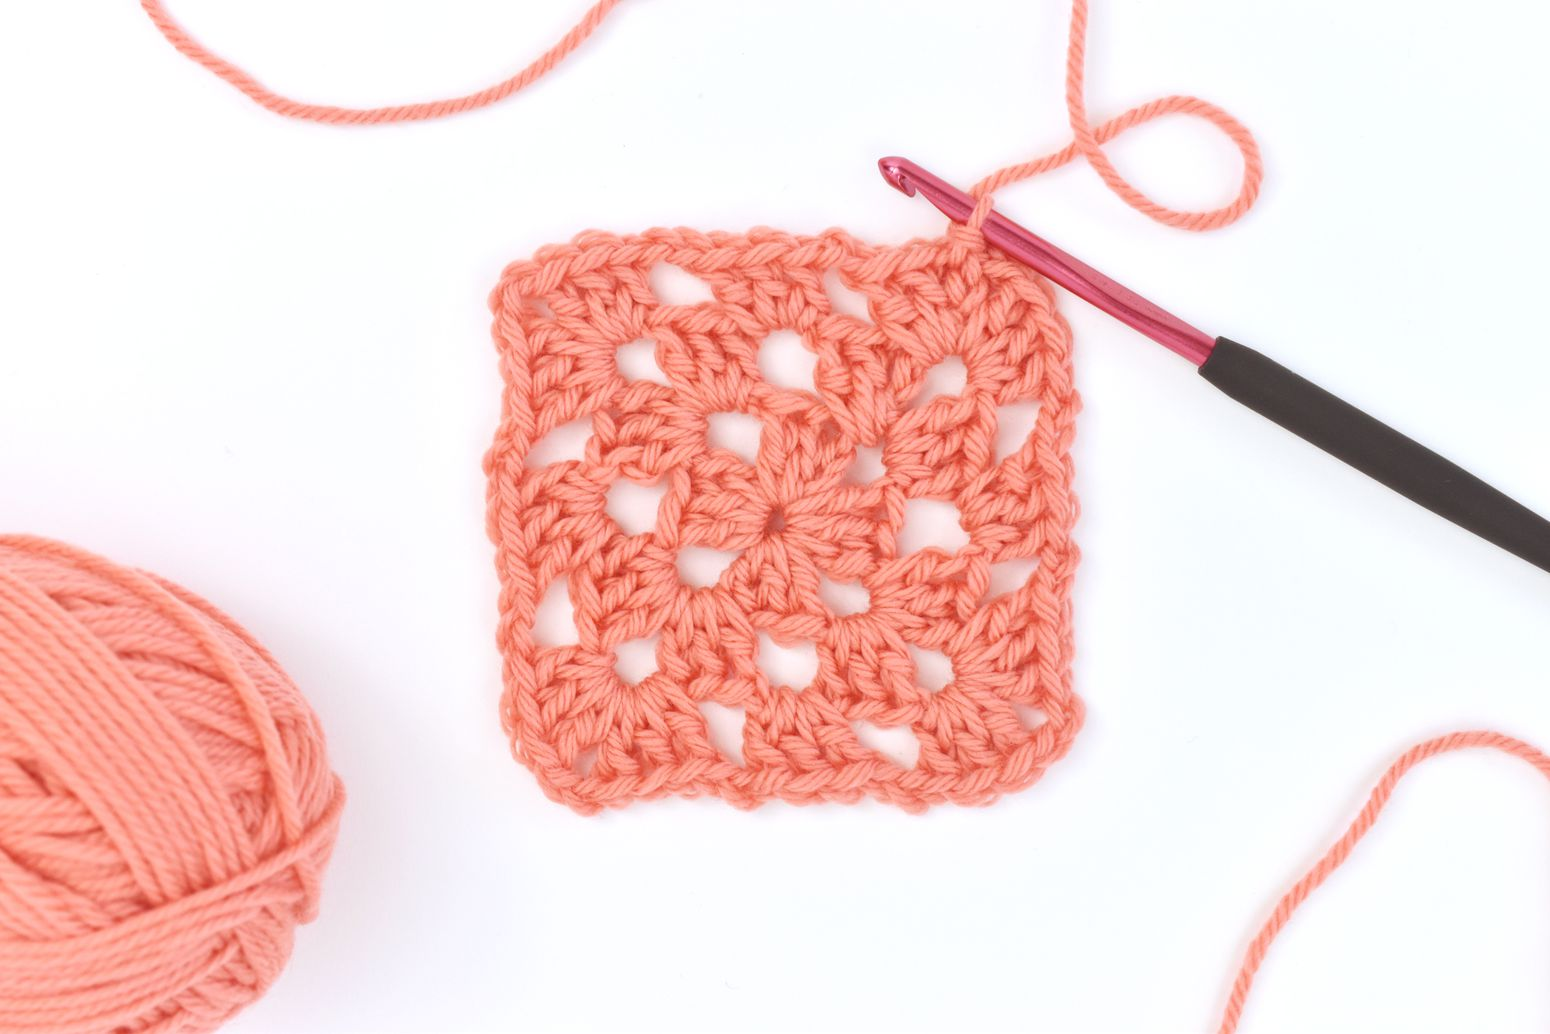 I need help with granny square.